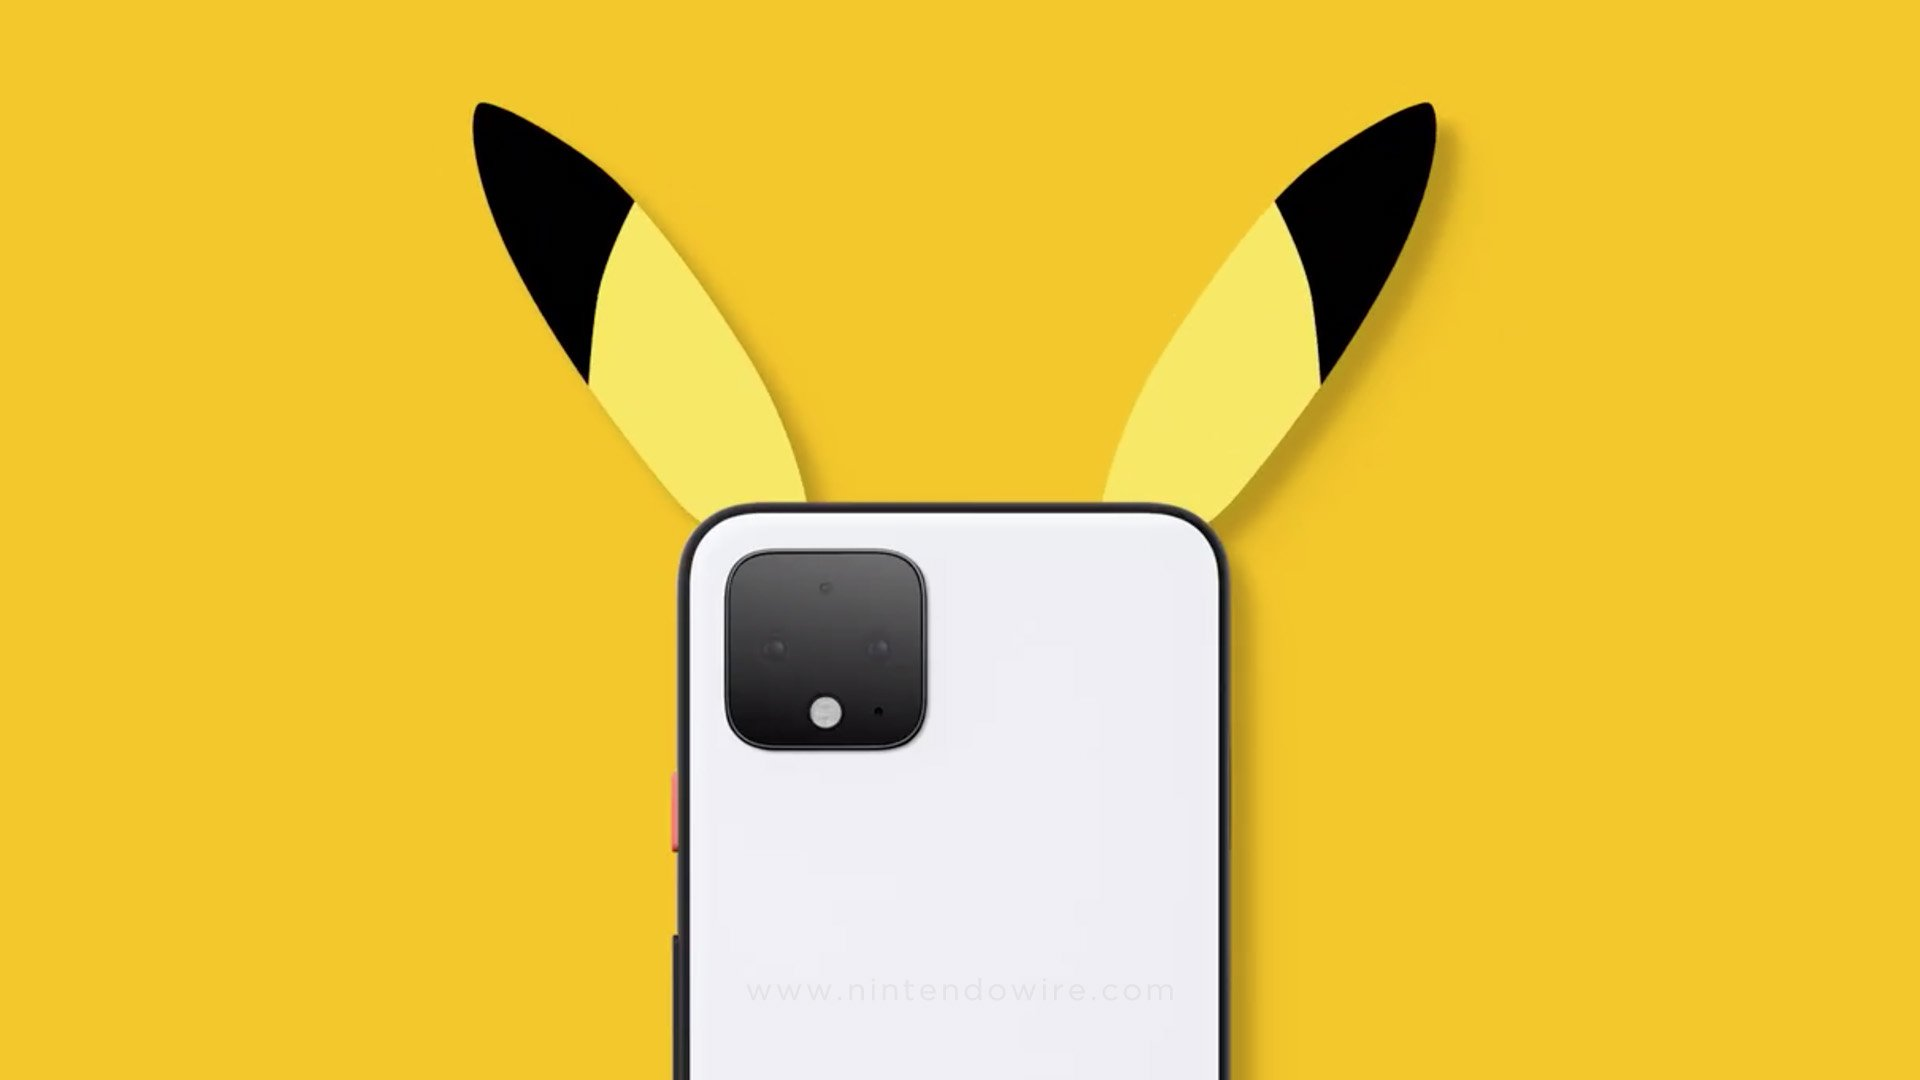 Check Out The Cute New Pokémon Wave Hello App For The Google